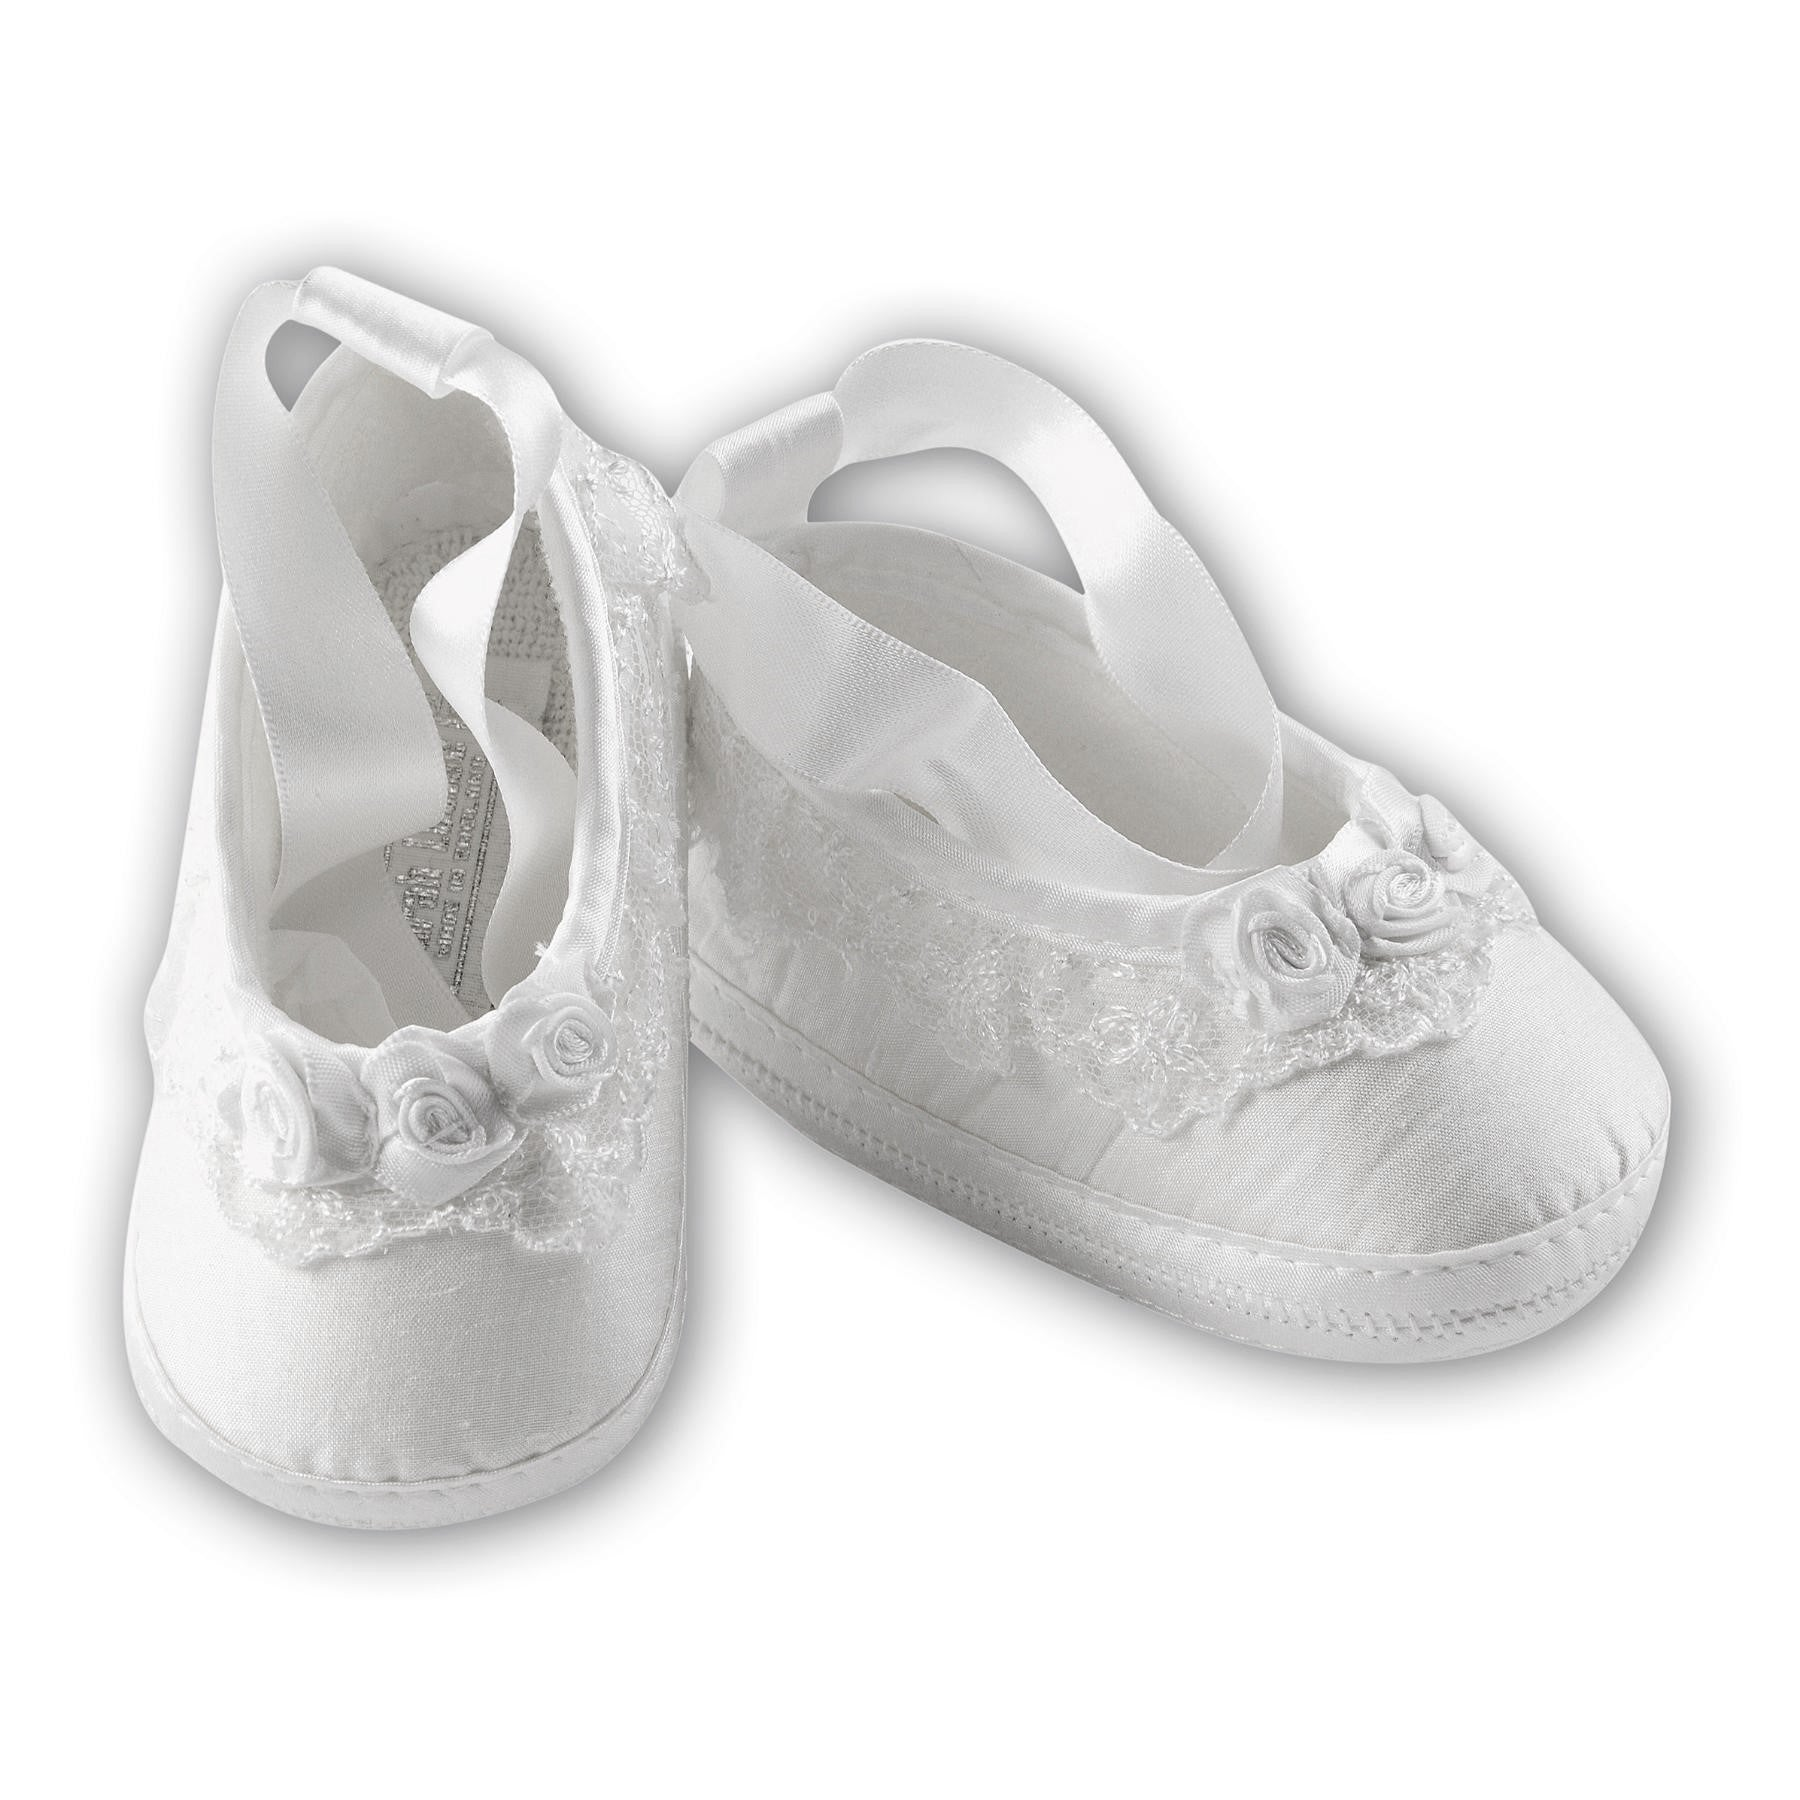 SARAH LOUISE CHRISTENING SHOES 4434W